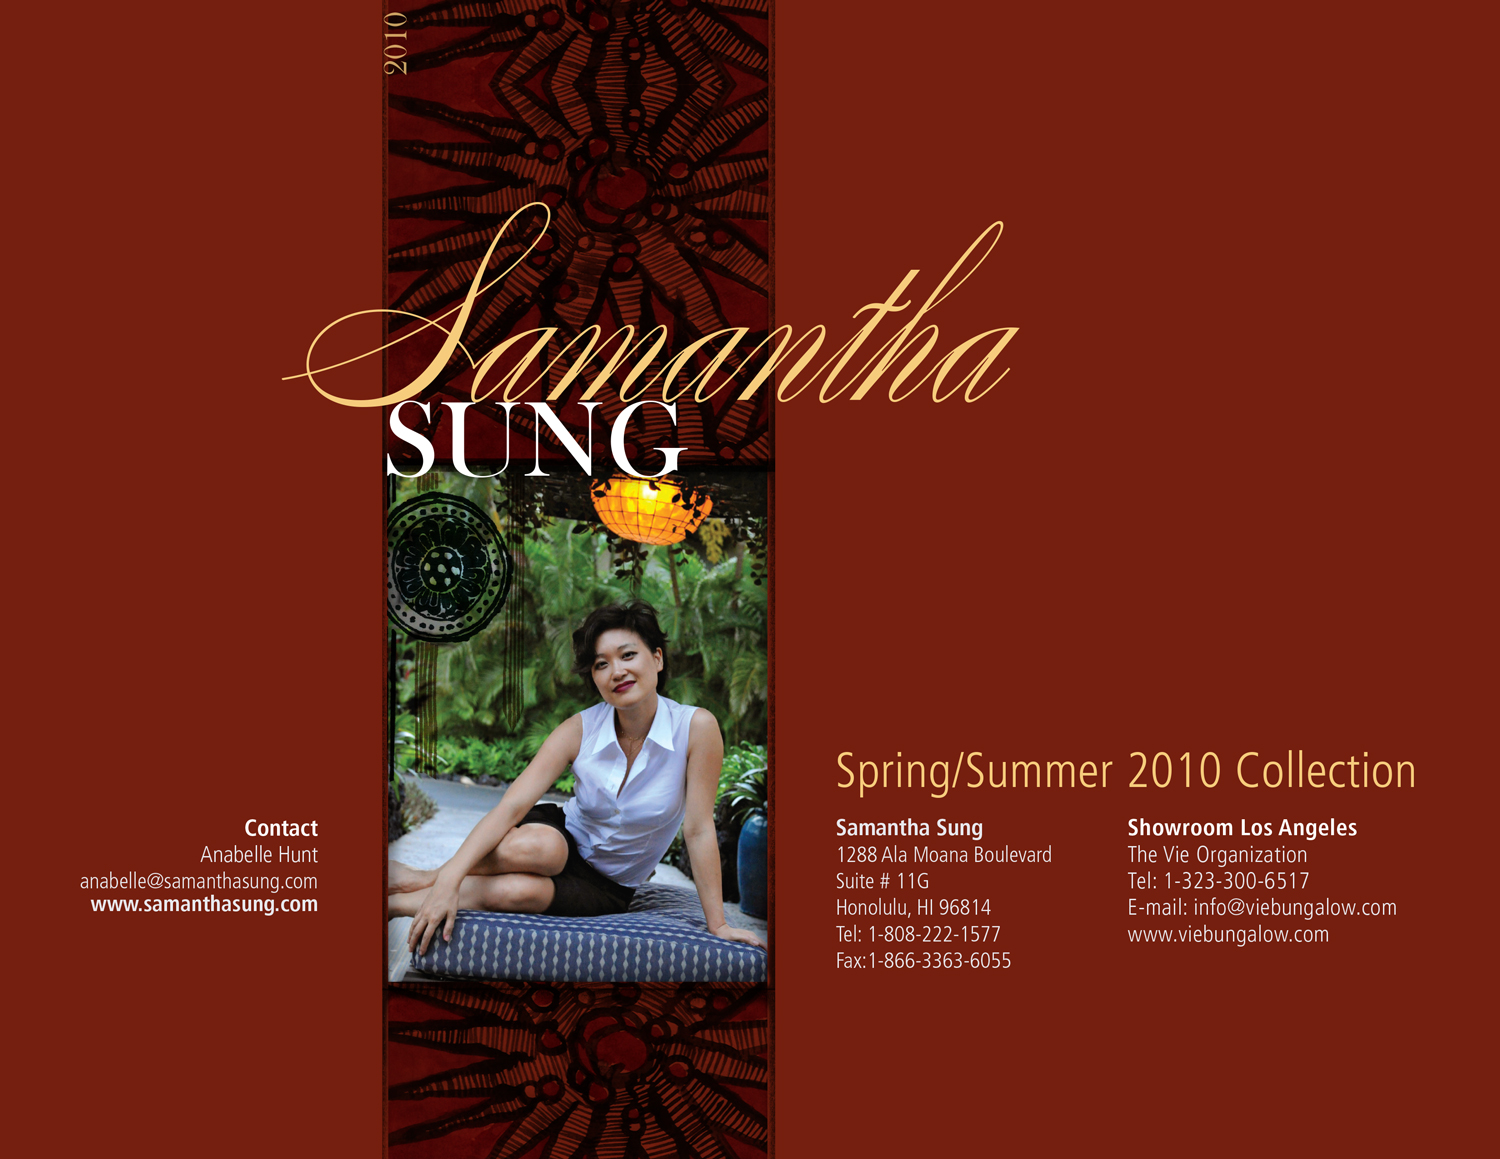 Samantha-Sung-Collection-Cover.jpg